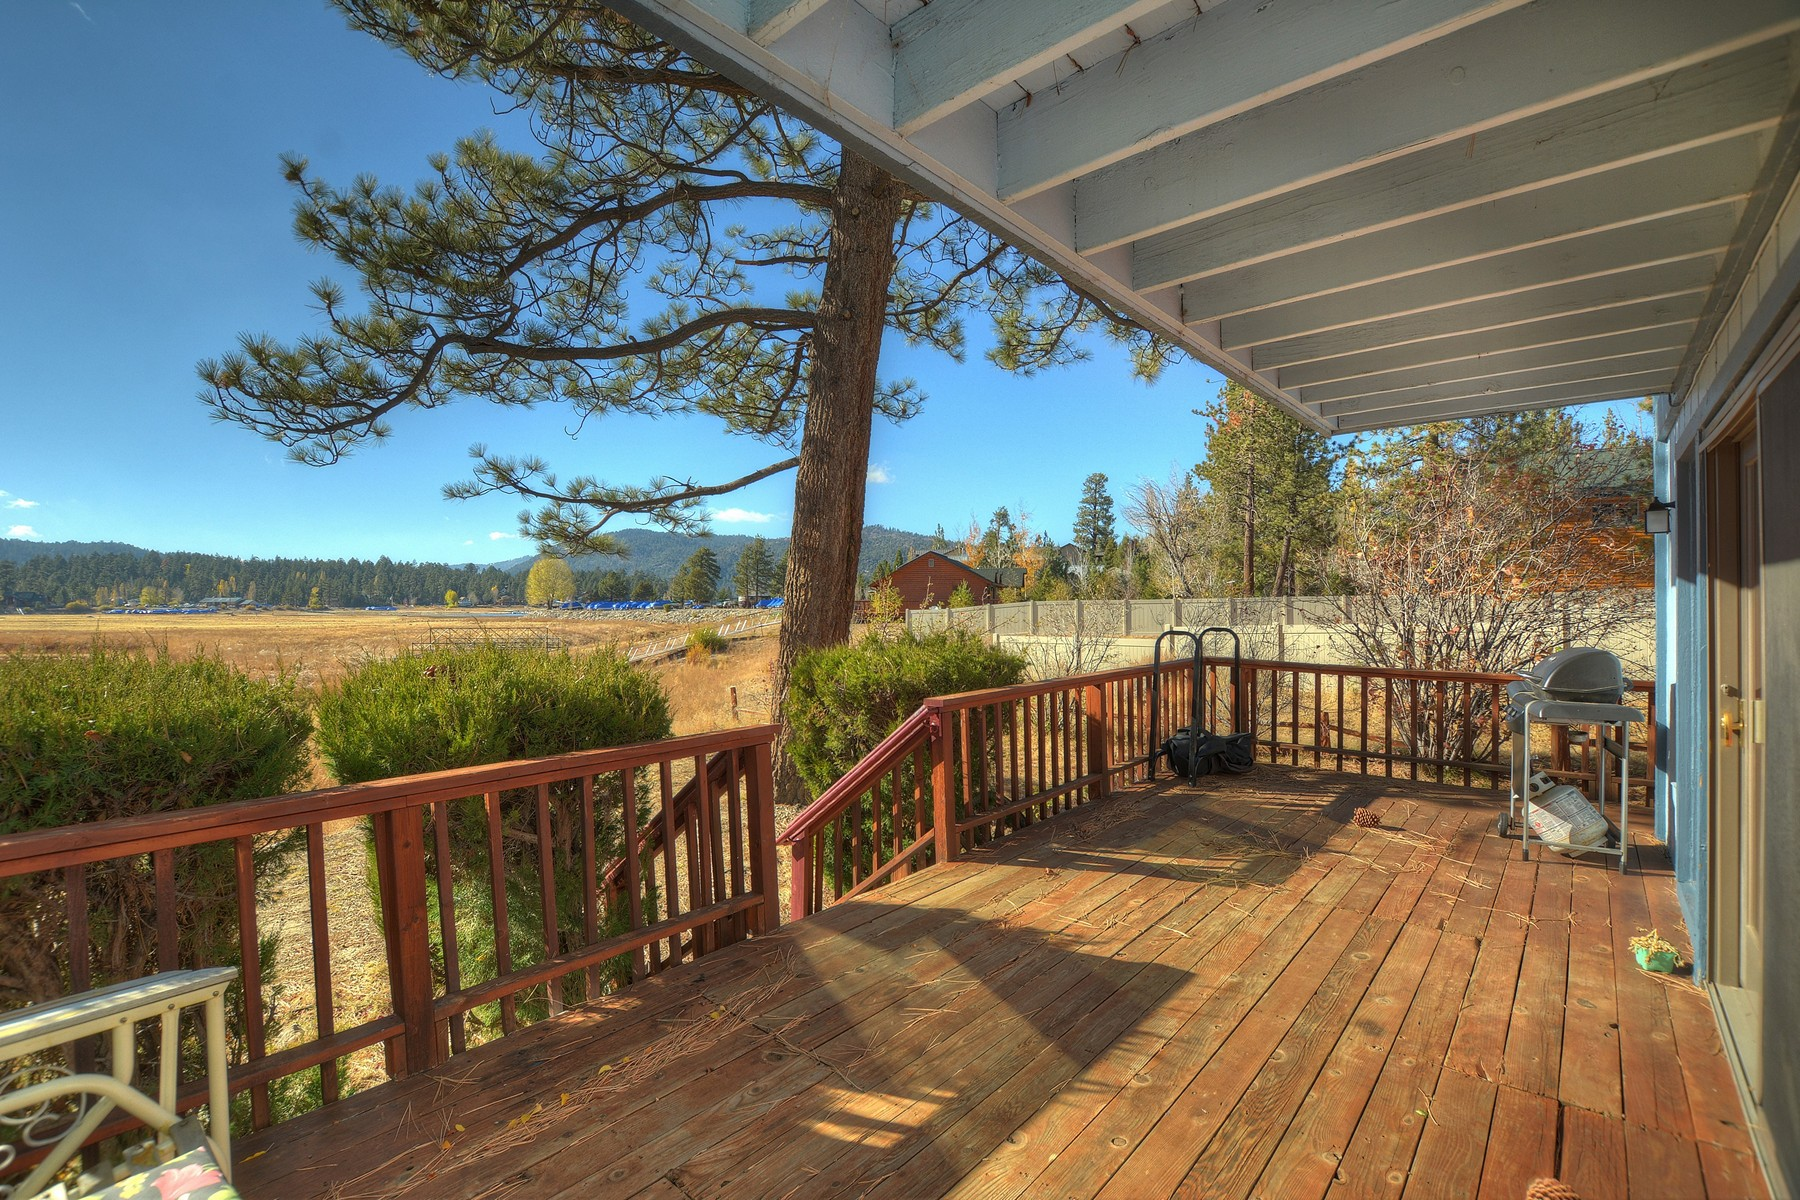 Single Family Home for Sale at 476 Tavern Big Bear Lake, California, 92315 United States